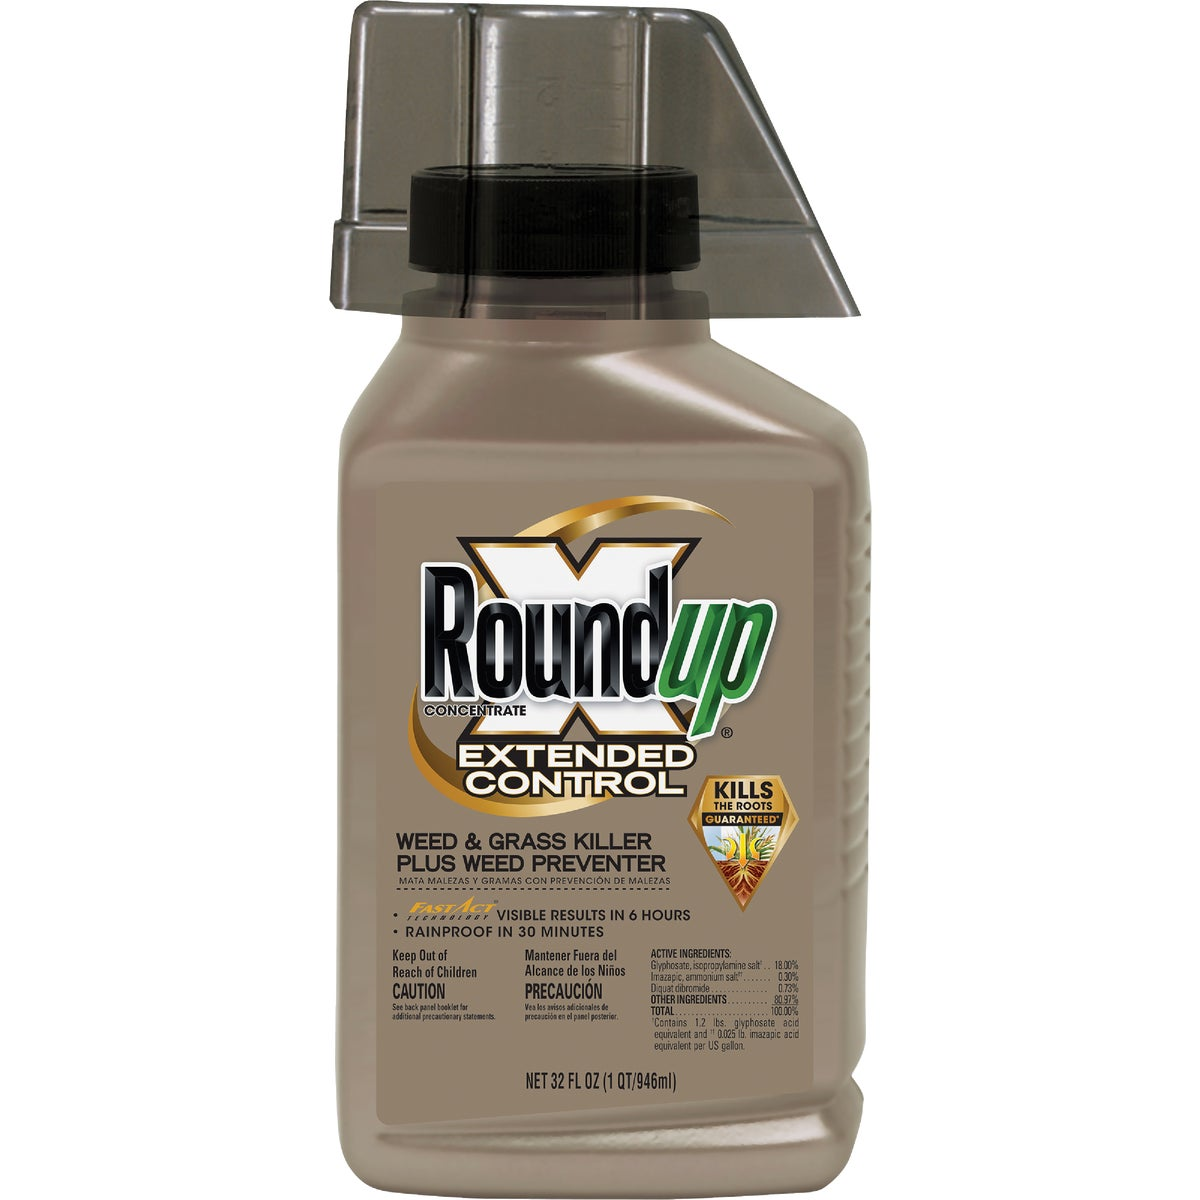 32OZ CONC EXTEND ROUNDUP - 5705010 by Scotts Company